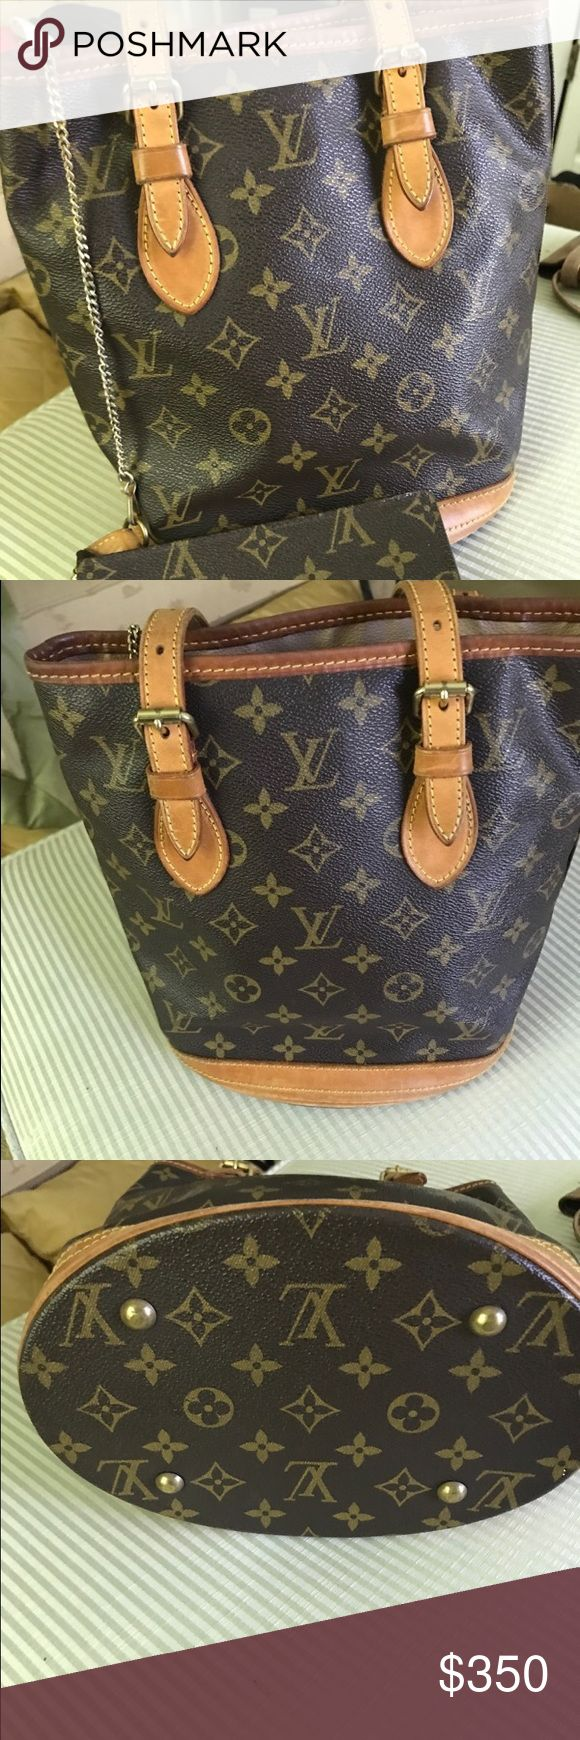 Louis Vuitton Bucket Bag! AUTHENTIC Louis Vuitton Bucket Bag! AUTHENTIC. Item is in Fair condition, gently worn in. Comes with coin pouch attached.   11 w x 10 h z 4 deep  shoulder straps can be adjusted from 7 - 11 inches  inside bag 6w x 4 h Louis Vuitton Bags